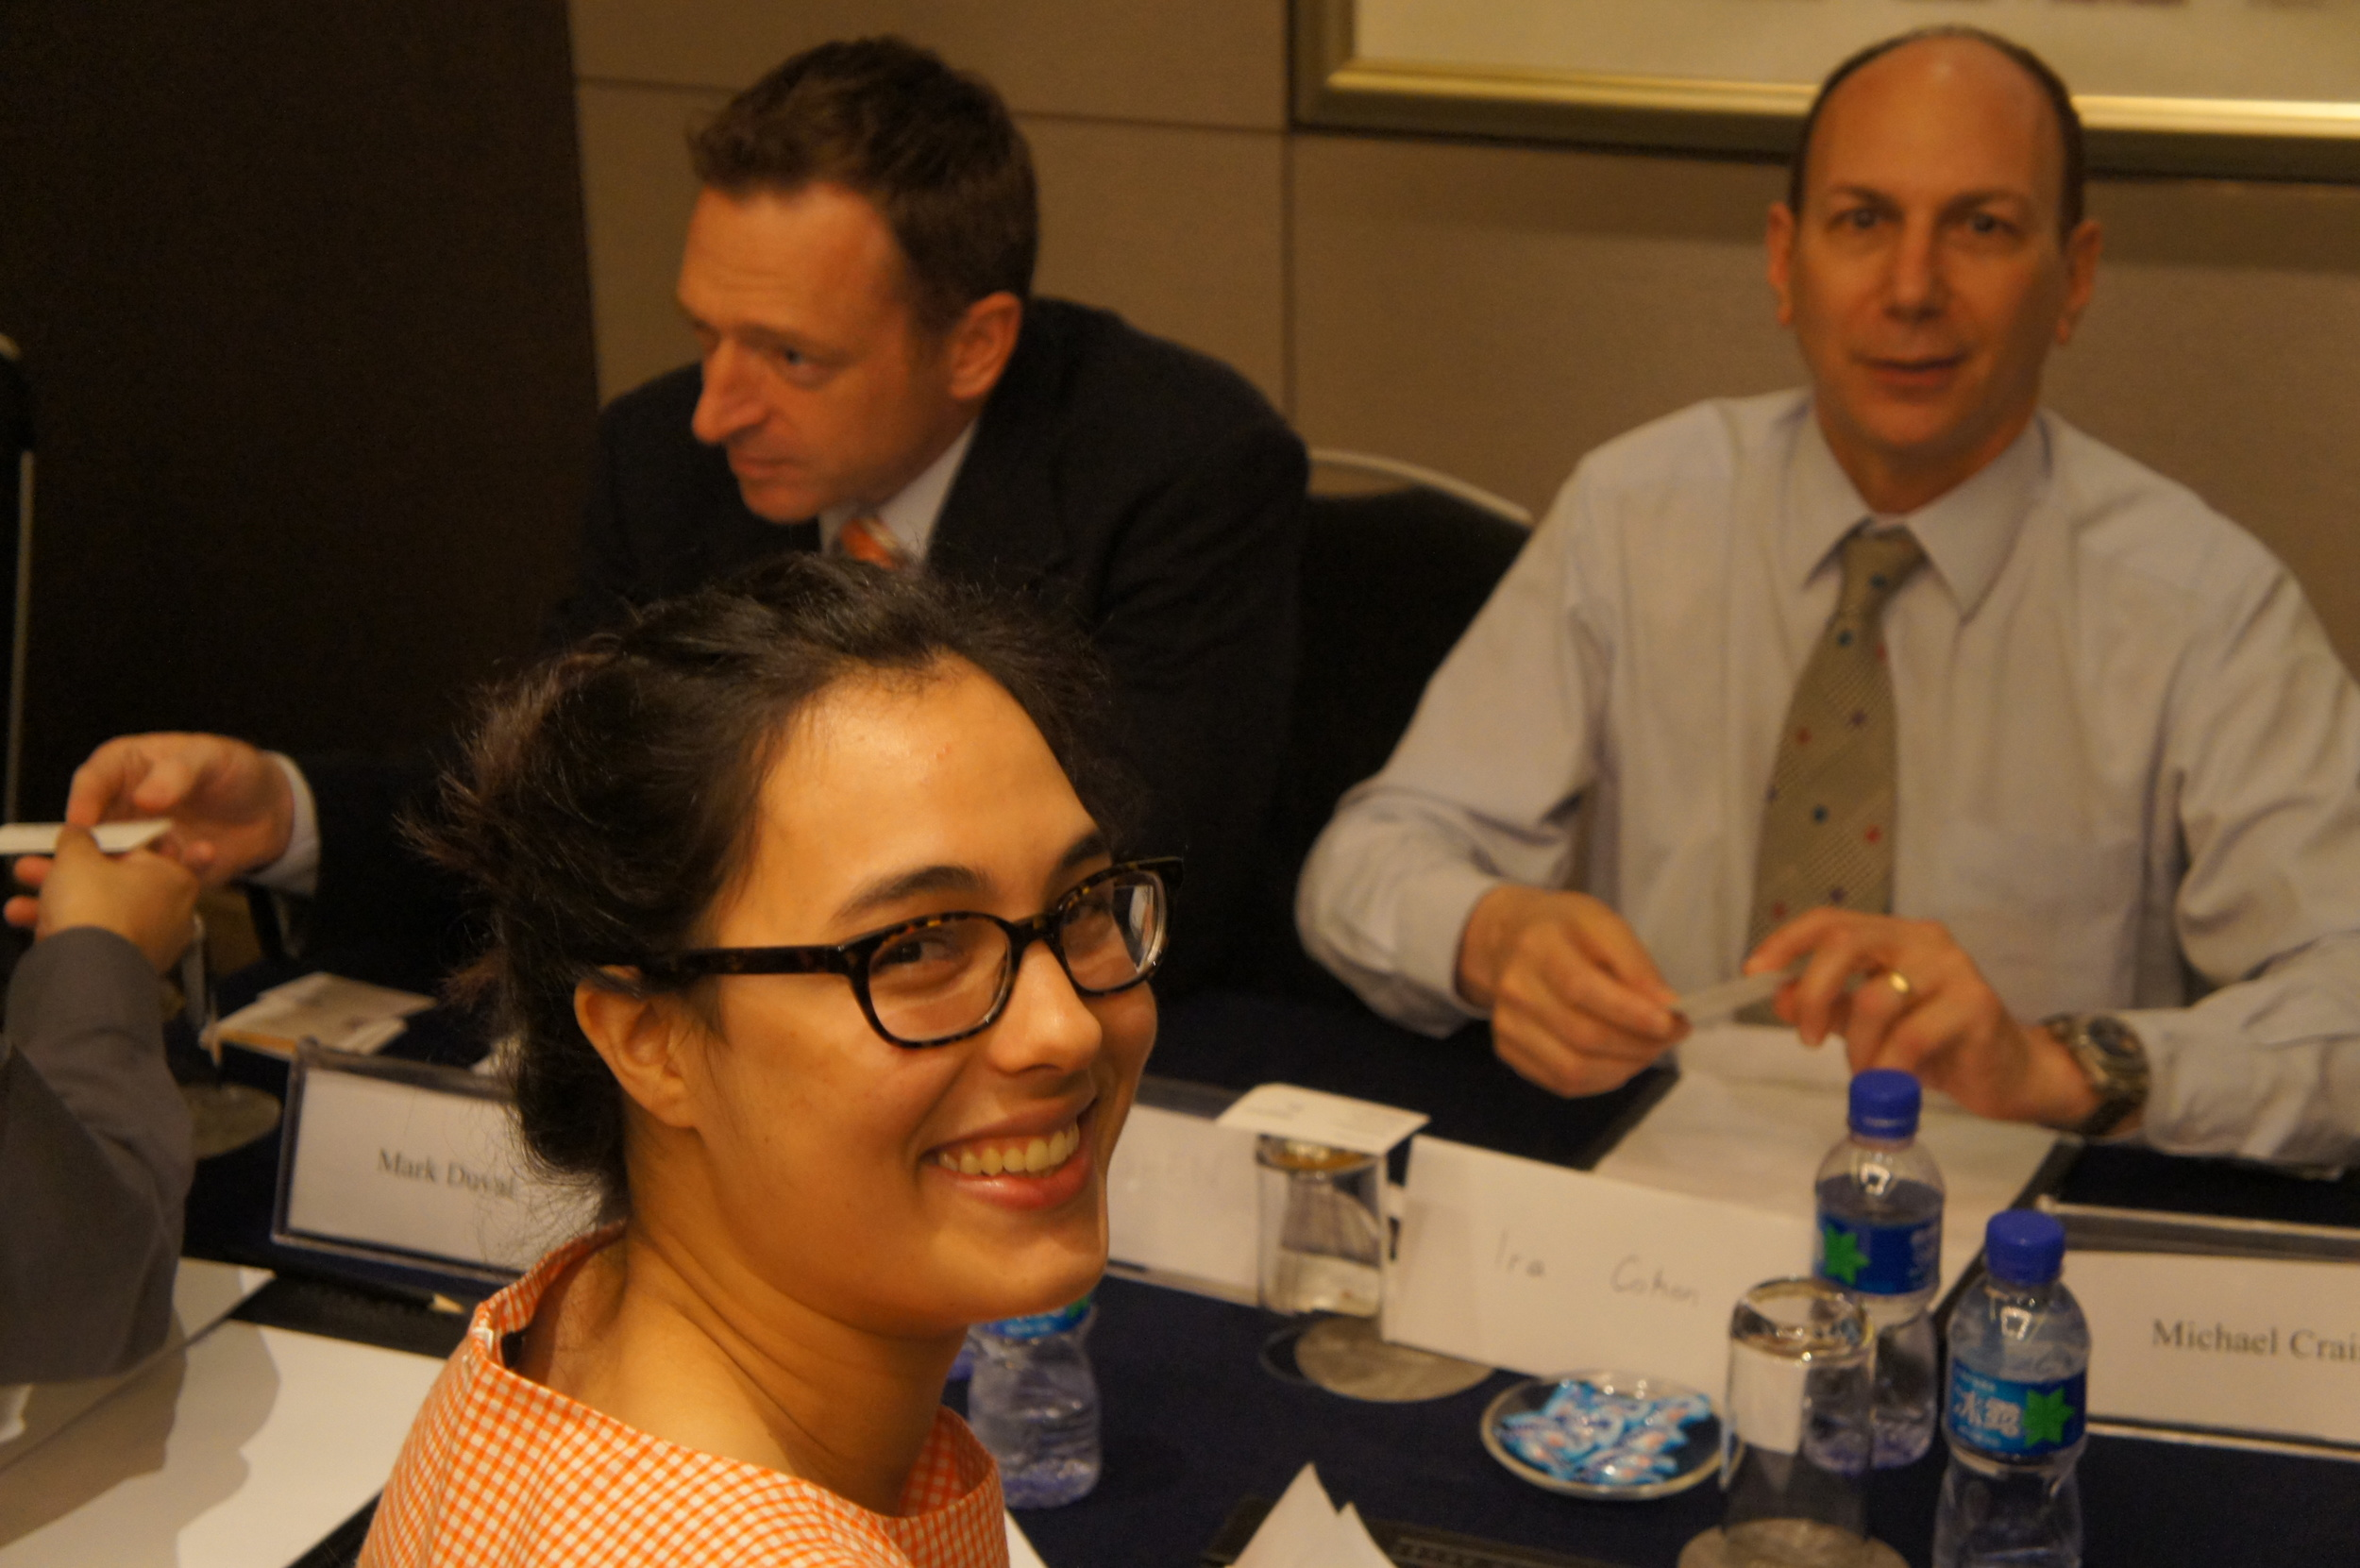 Our summer intern Percia having a great conversation with Ira Cohen, Executive Director of China EMBA Program